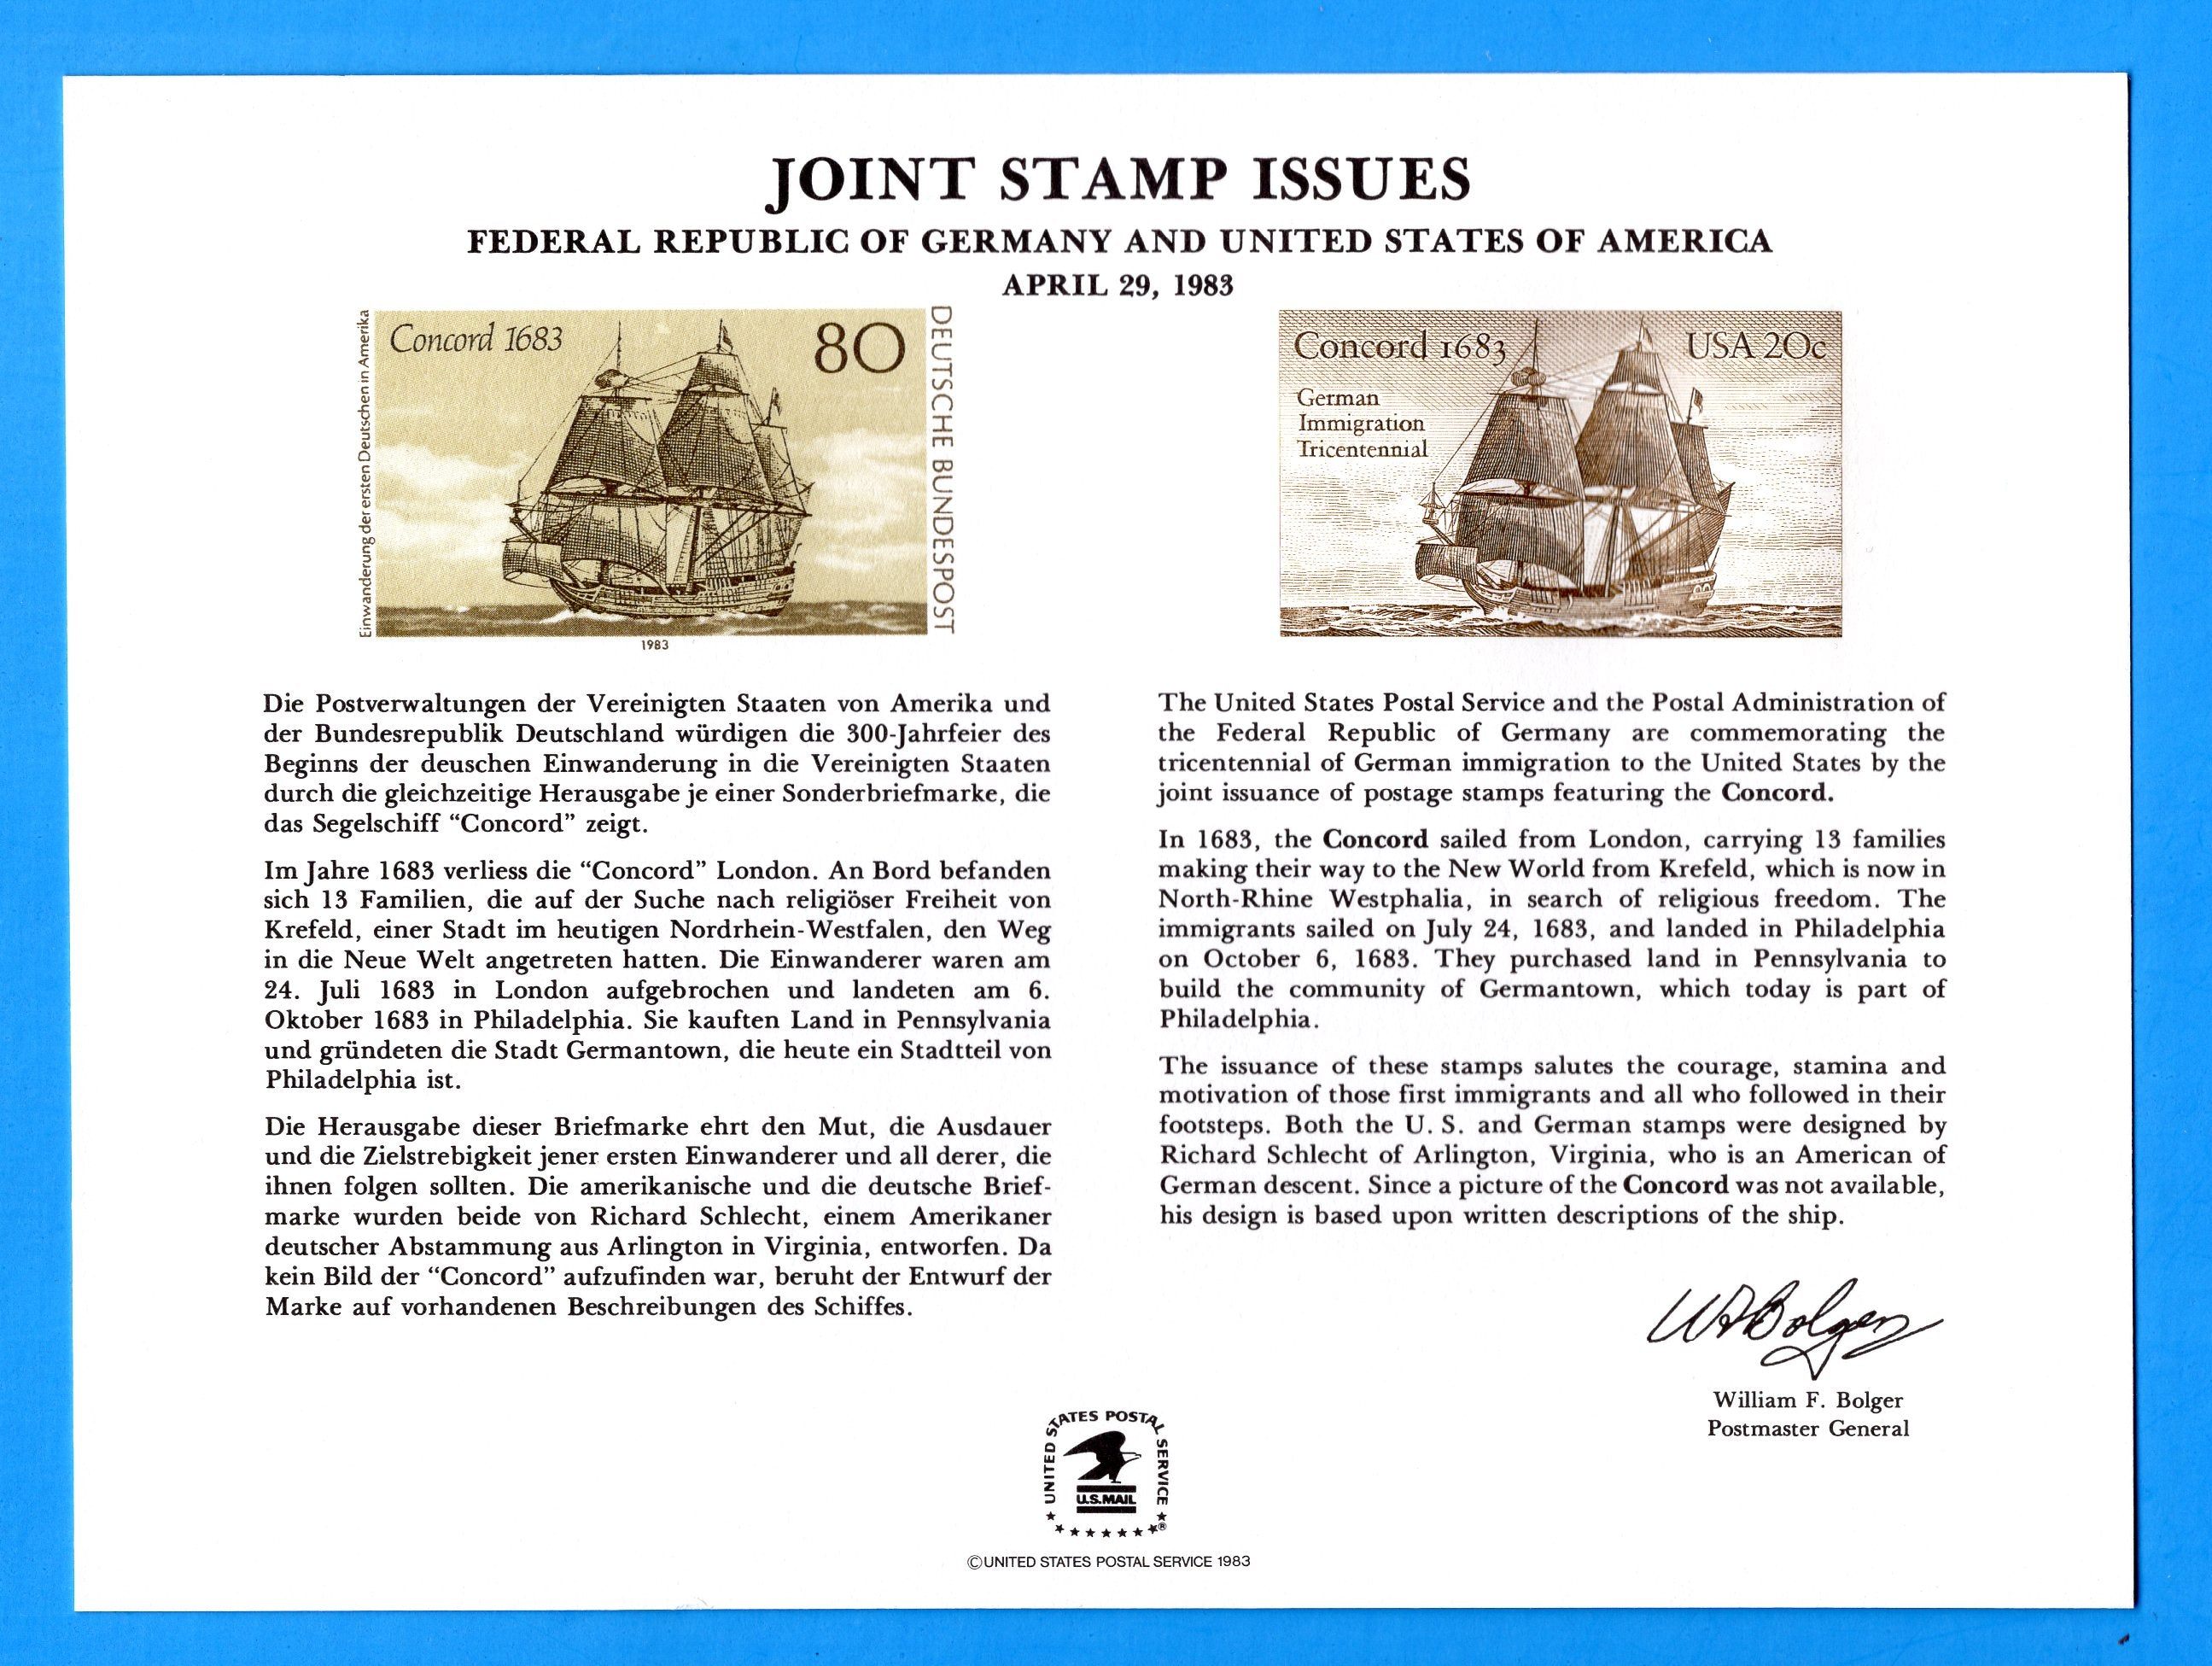 Joint Stamp Issues Germany and United States German Immigration Tricentennial Souvenir Card